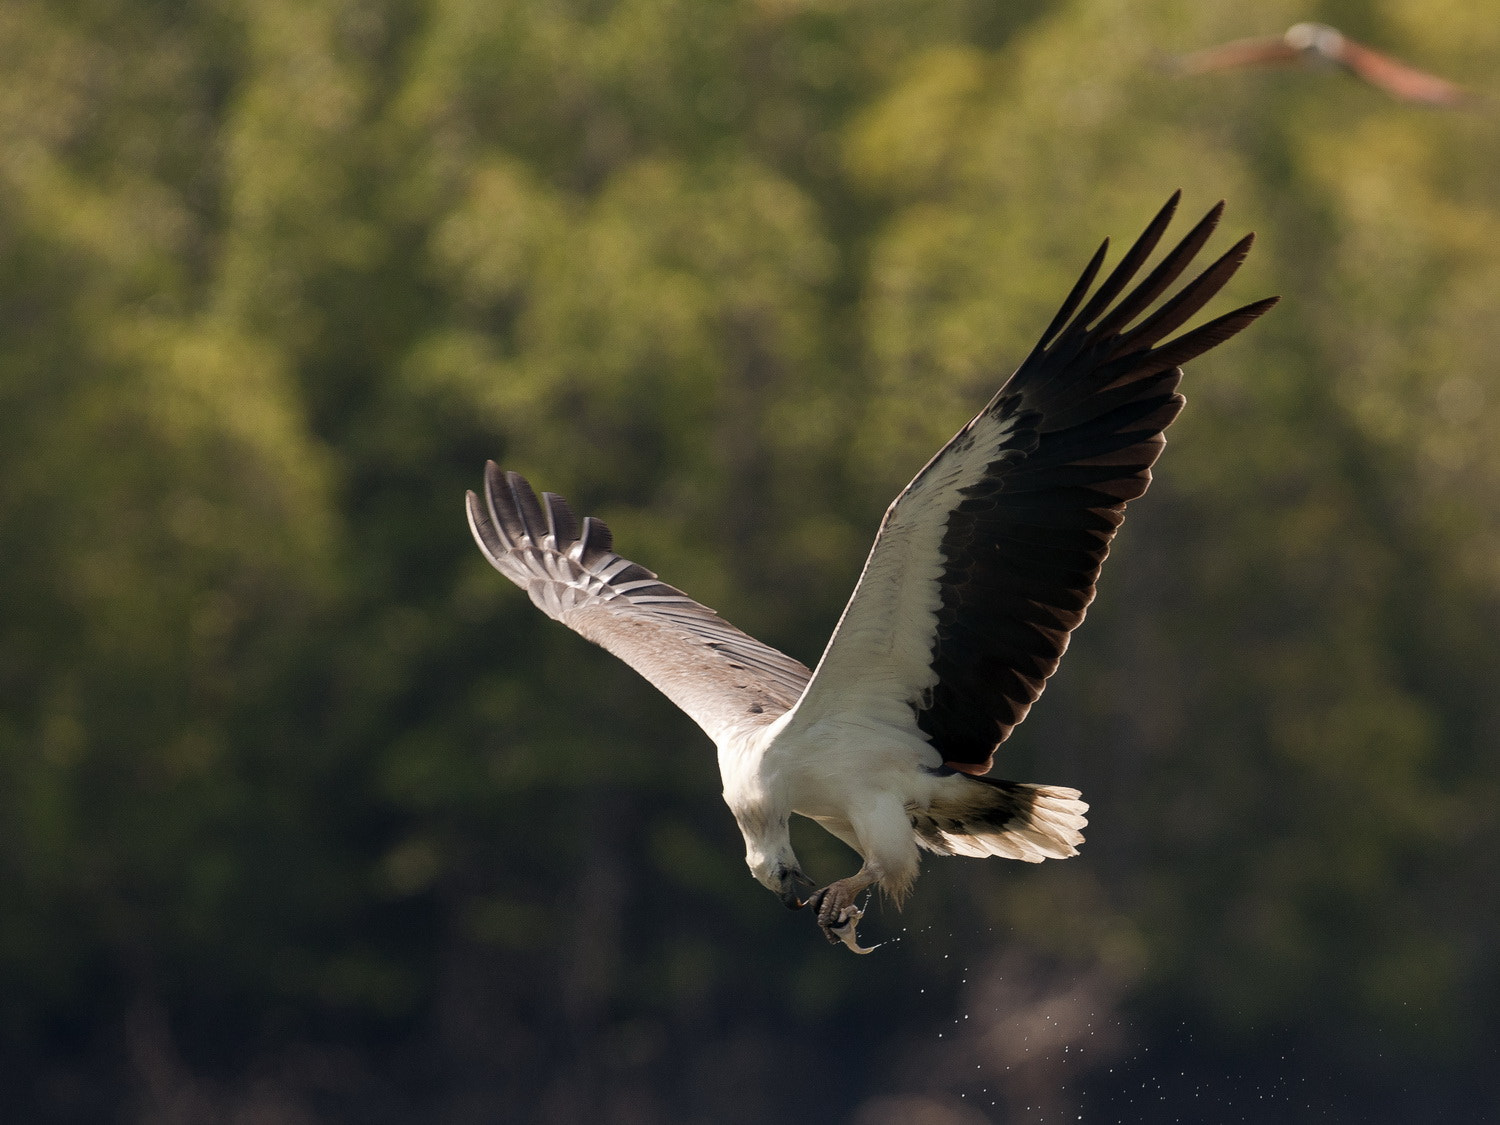 Photograph White Bellied Sea Eagle by SIJANTO NATURE on 500px